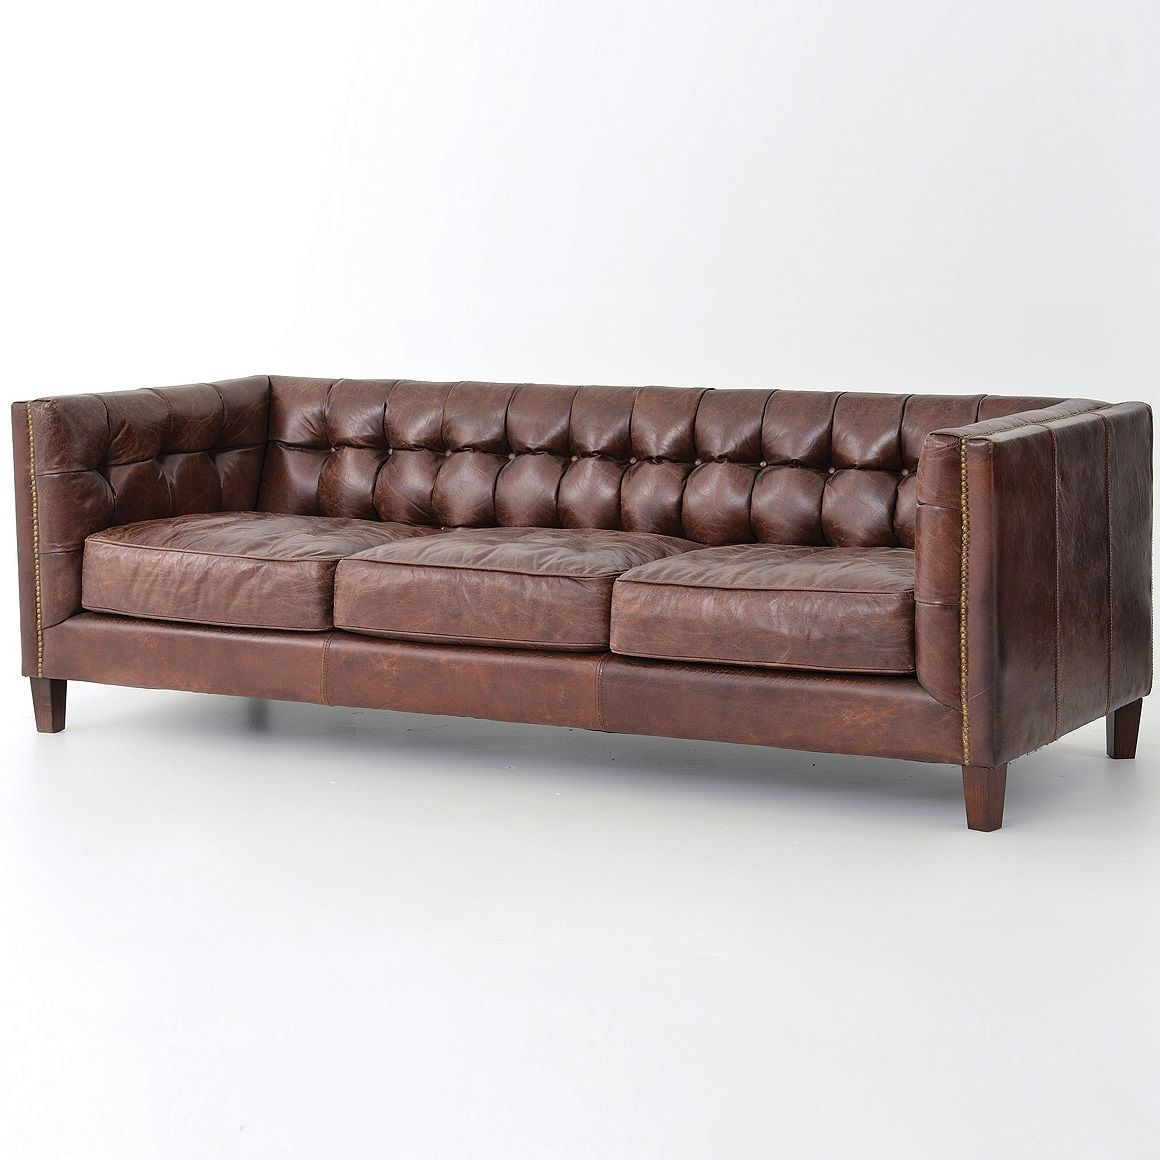 Abbott Vintage Cigar Tufted Leather Sofa In 2020 Tufted Leather Couch Contemporary Leather Sofa Tufted Leather Sofa